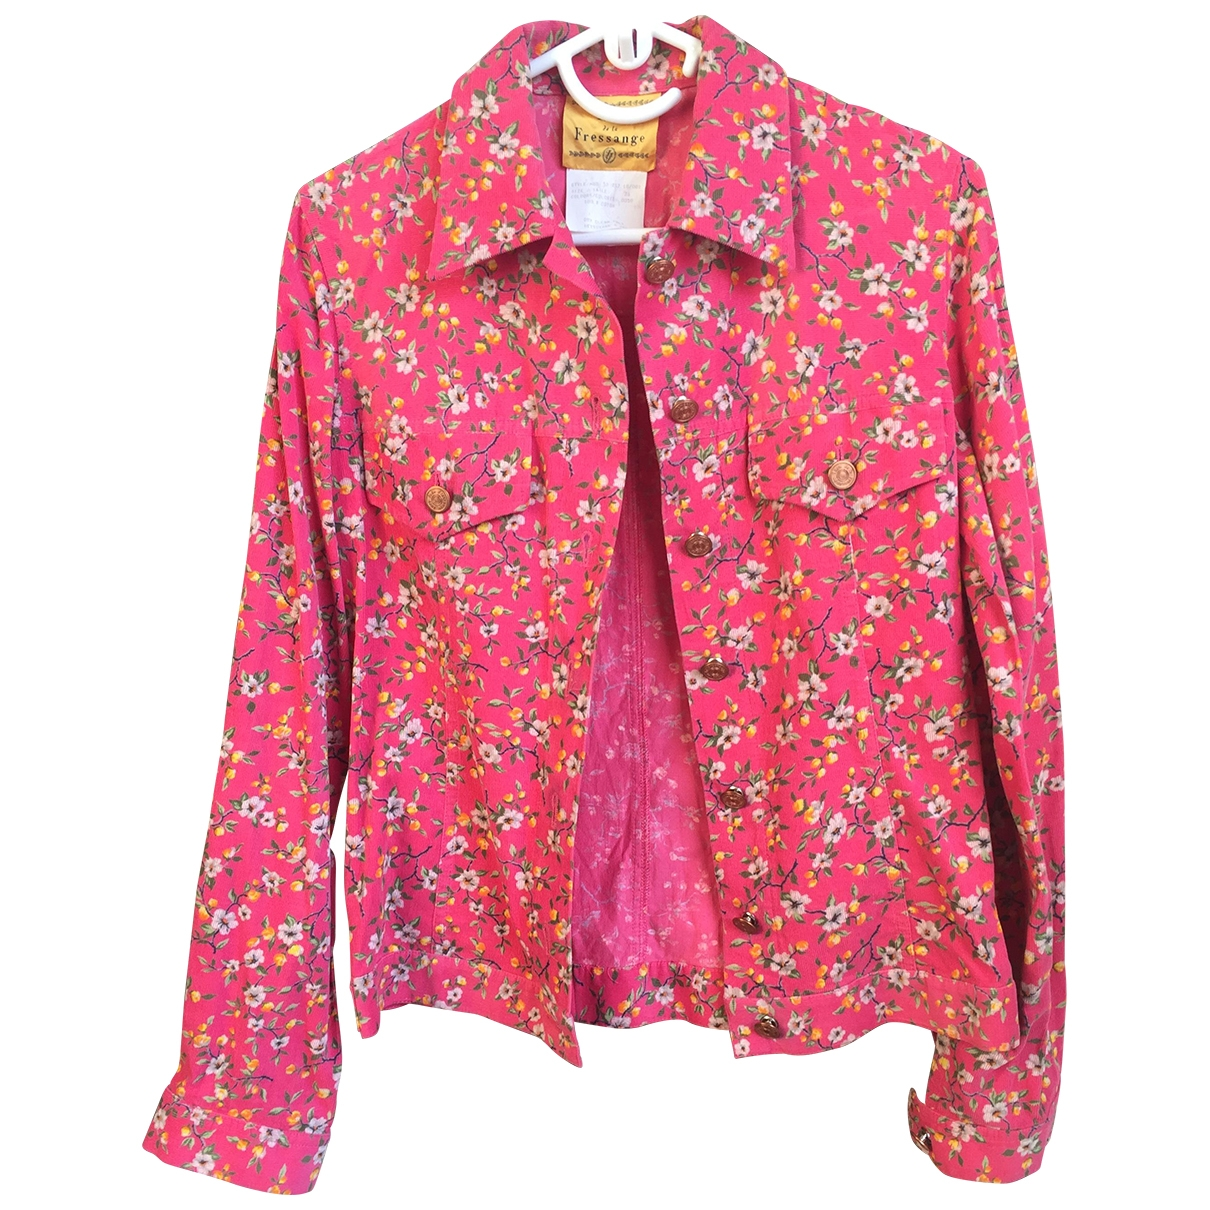 Inès De La Fressange Paris \N Pink Velvet jacket for Women 36 FR